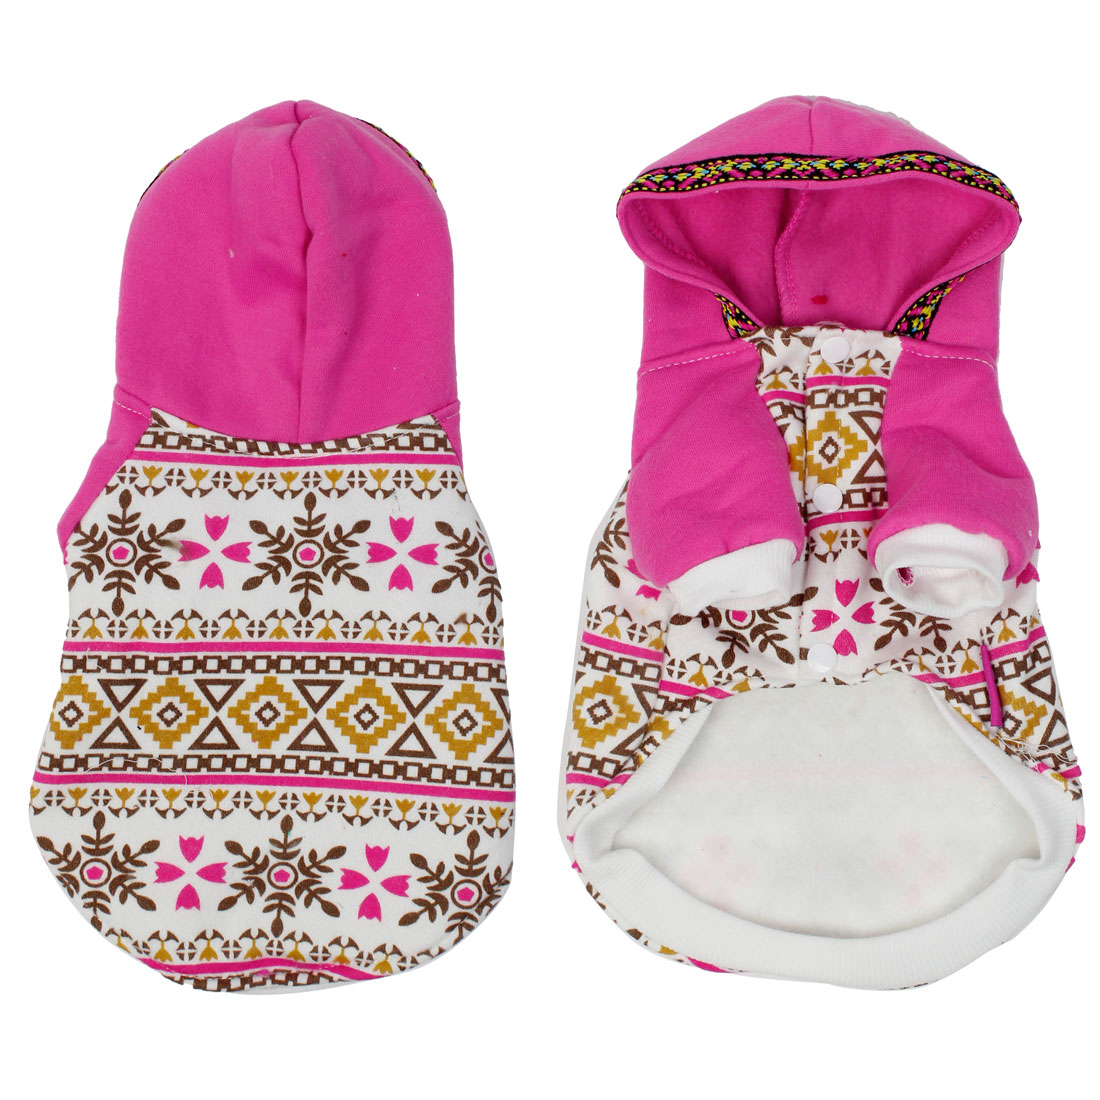 Fuchsia Single Breasted Warm Hoodie Puppy Dog Doggie Sweater Coat Outerwear XS